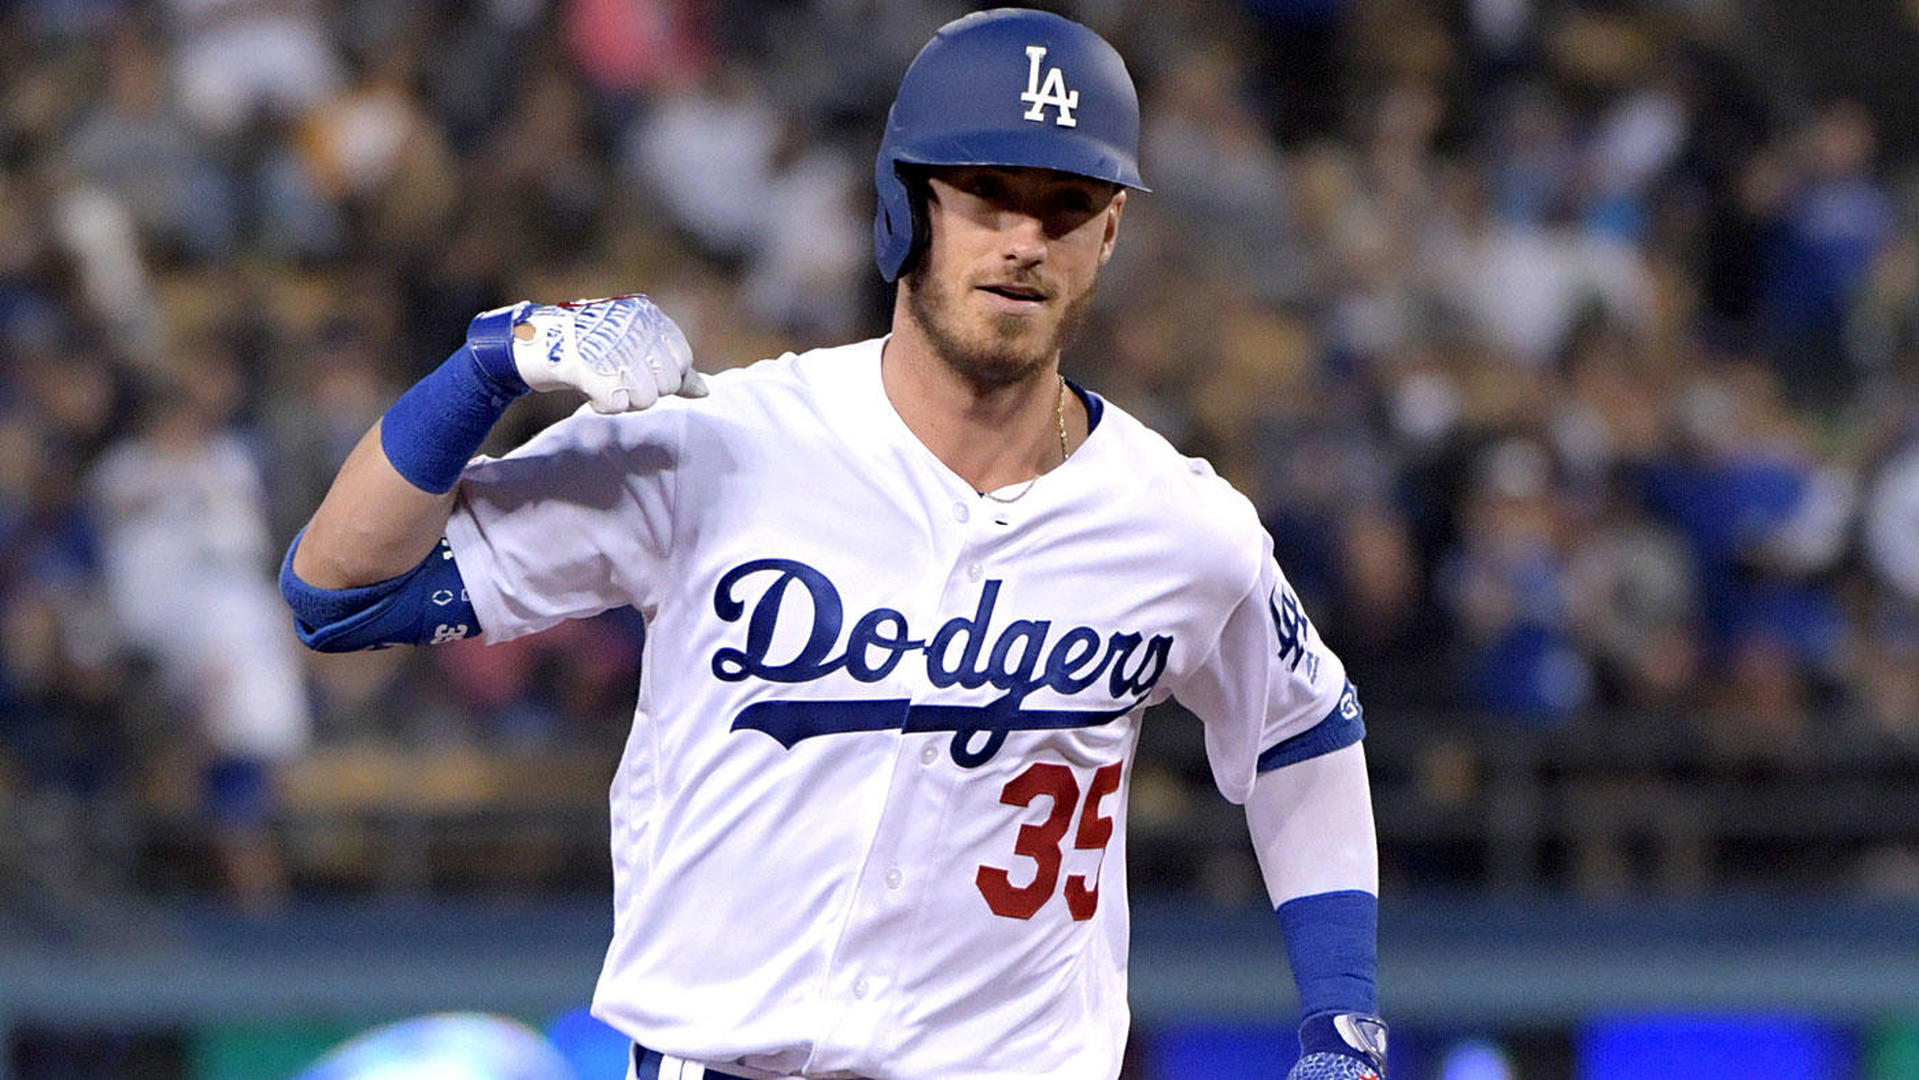 Four reasons why Dodgers' Cody Bellinger could be MLB's first .400 hitter since Ted Williams